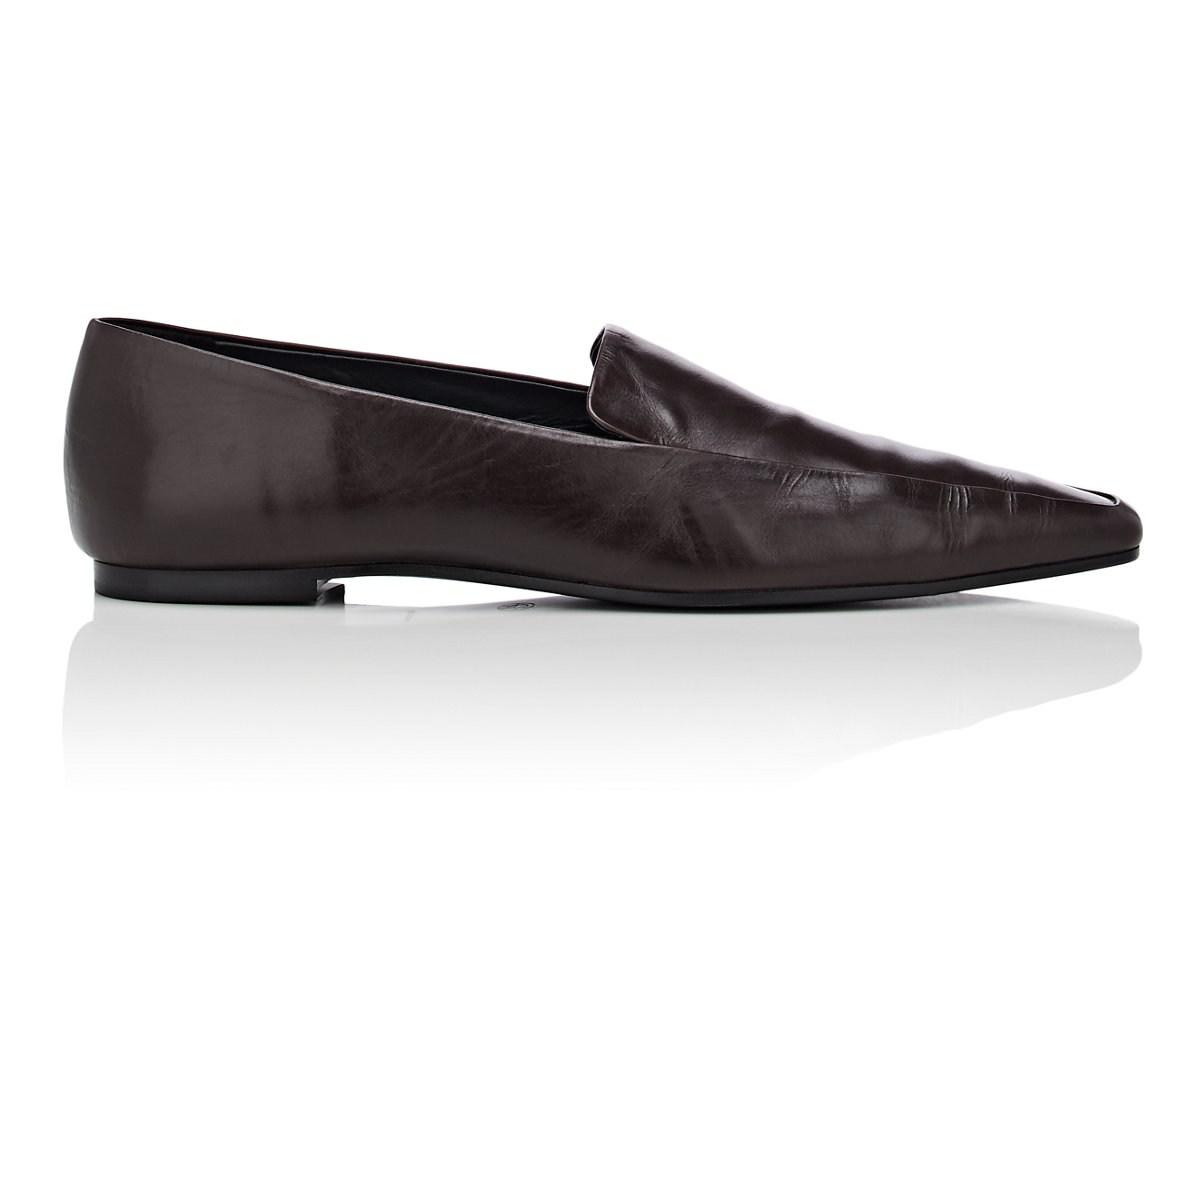 aa87934474d Lyst - The Row Minimal Leather Loafers in Brown